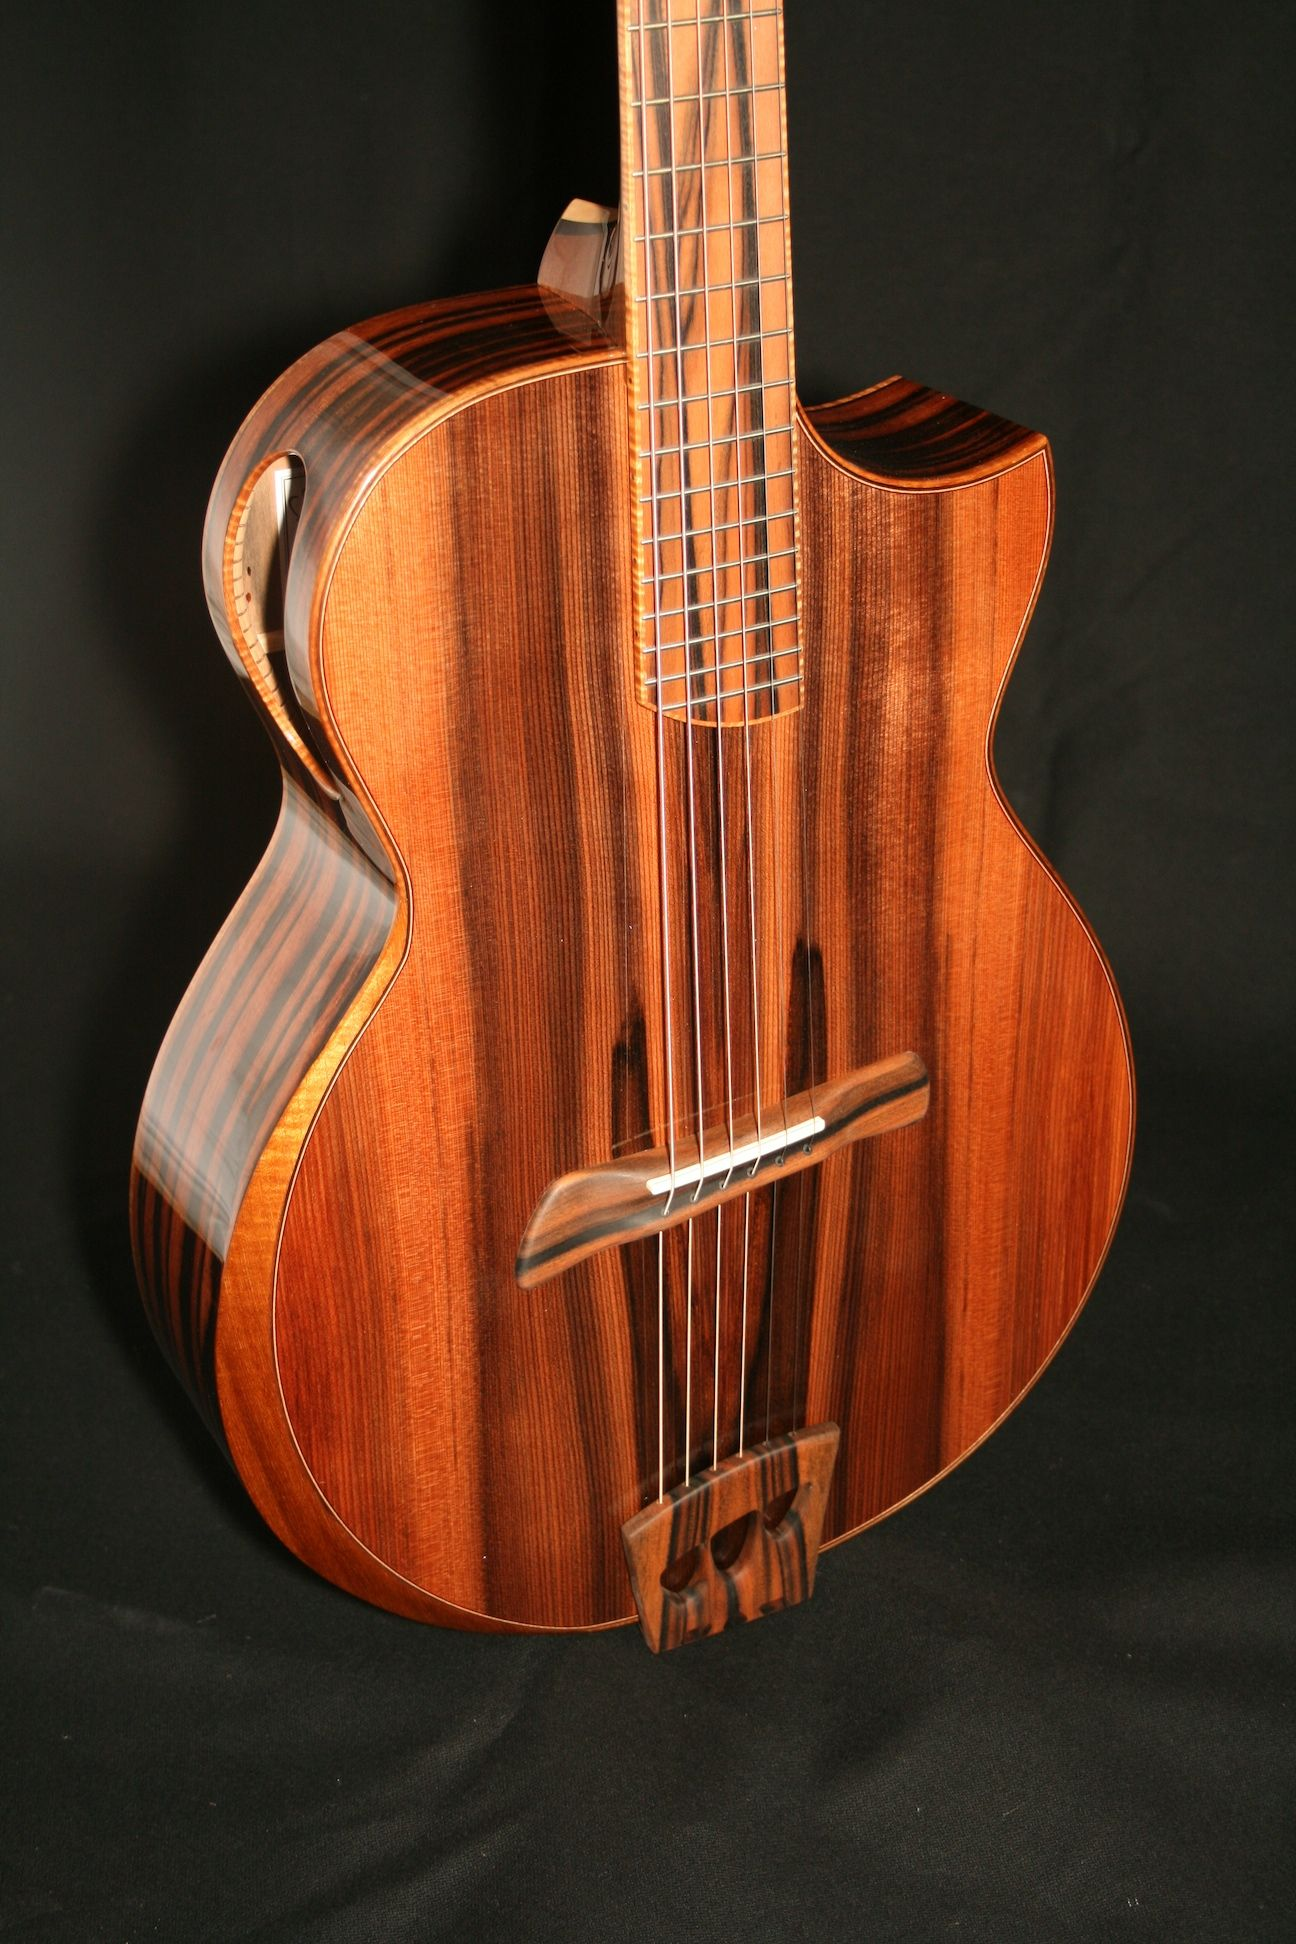 """Batson Grand Concert. RESEARCH #DdO:) - https://www.pinterest.com/DianaDeeOsborne/instruments-for-joy/ - I've found there are 8 original Batson Prototypes, handmade. This is like the back side of the blond wood Brazilian wood Adirondack Prototype - Handmade and signed between tuners on back of headstock by Cory Batson in 2007 /2008. """"Only"""" $7,900 because there's some wear- Offered at a deep discount minor blemishes in the finish."""